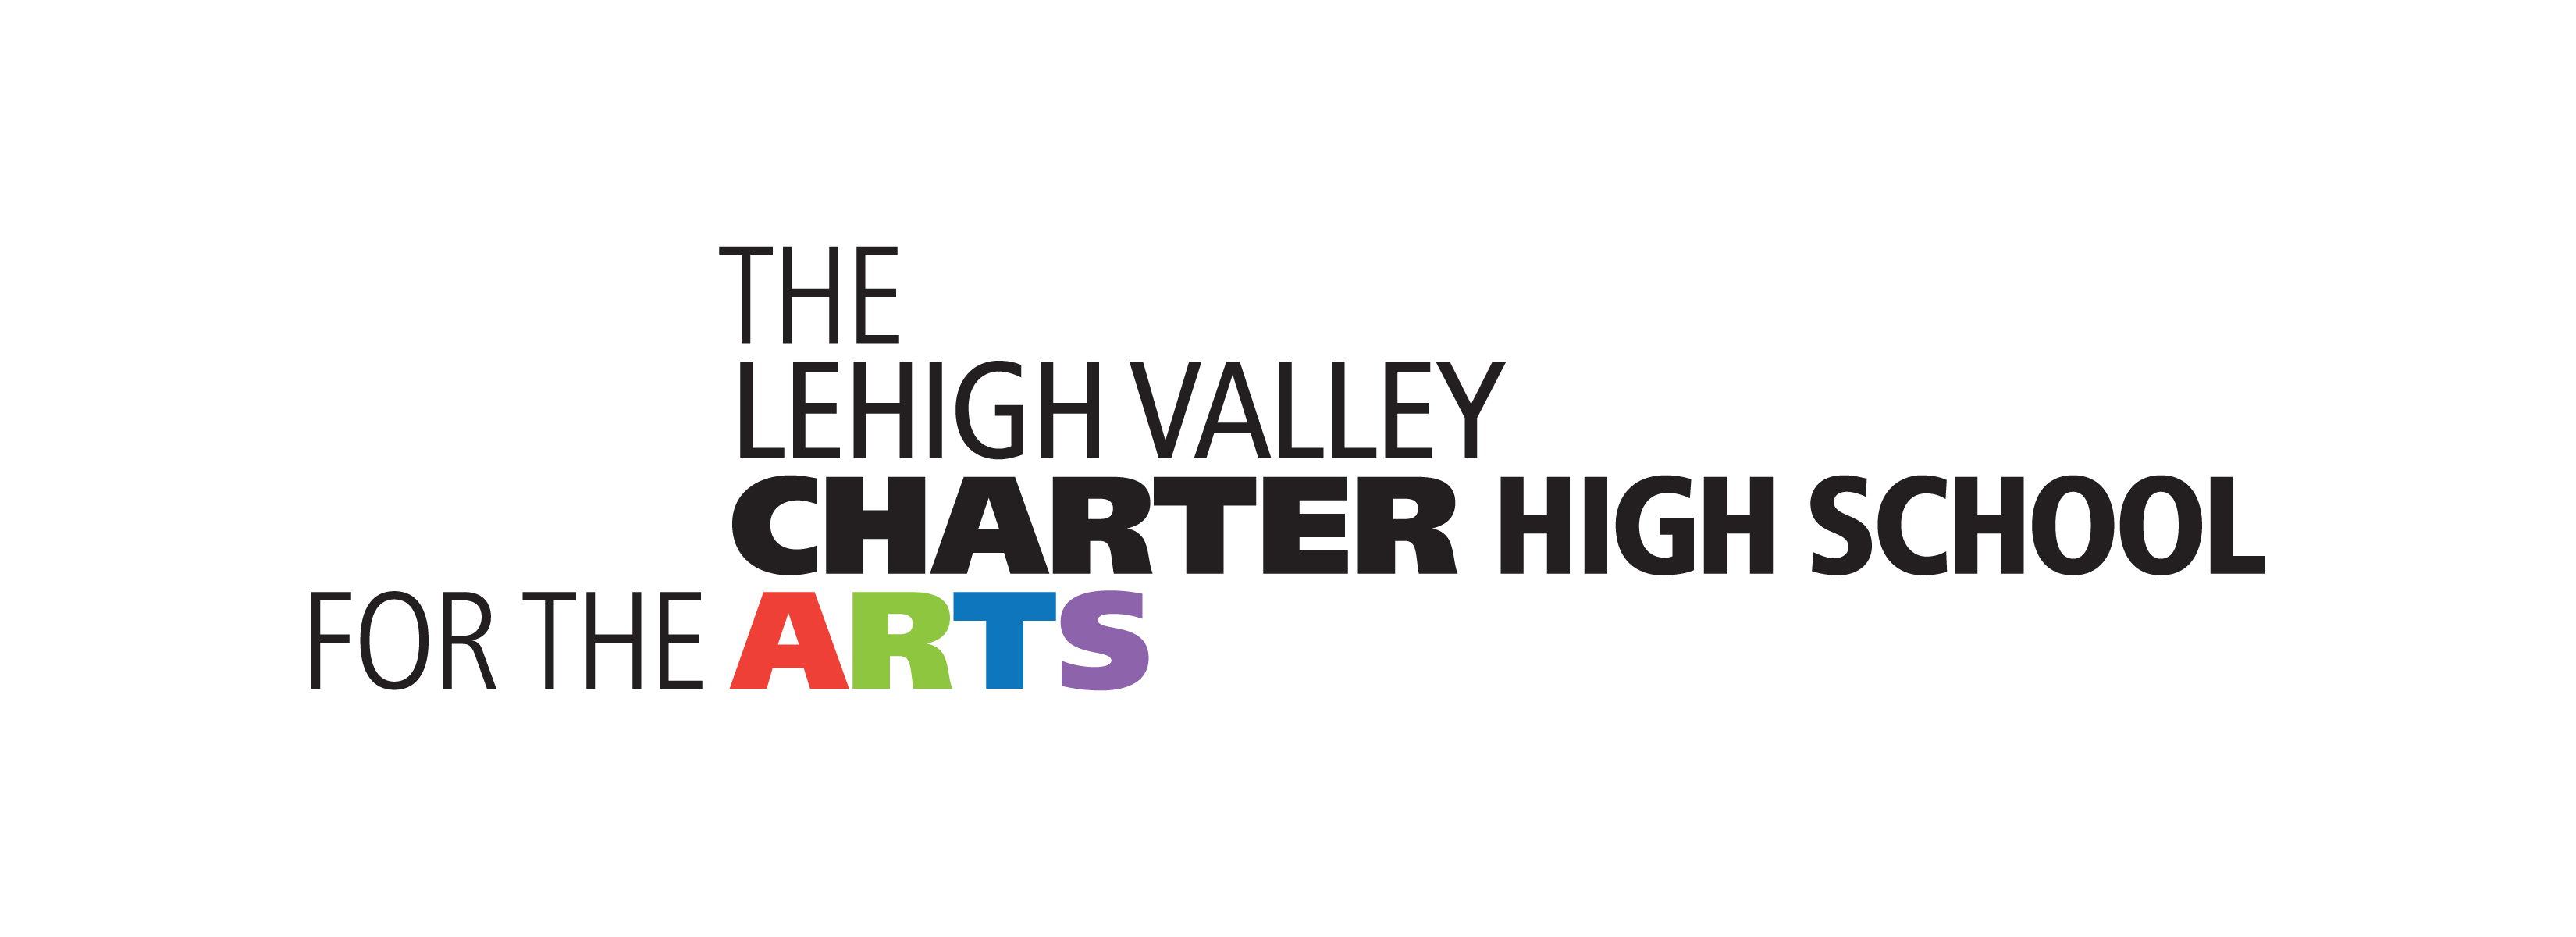 The Lehigh Valley Charter HS for the Arts